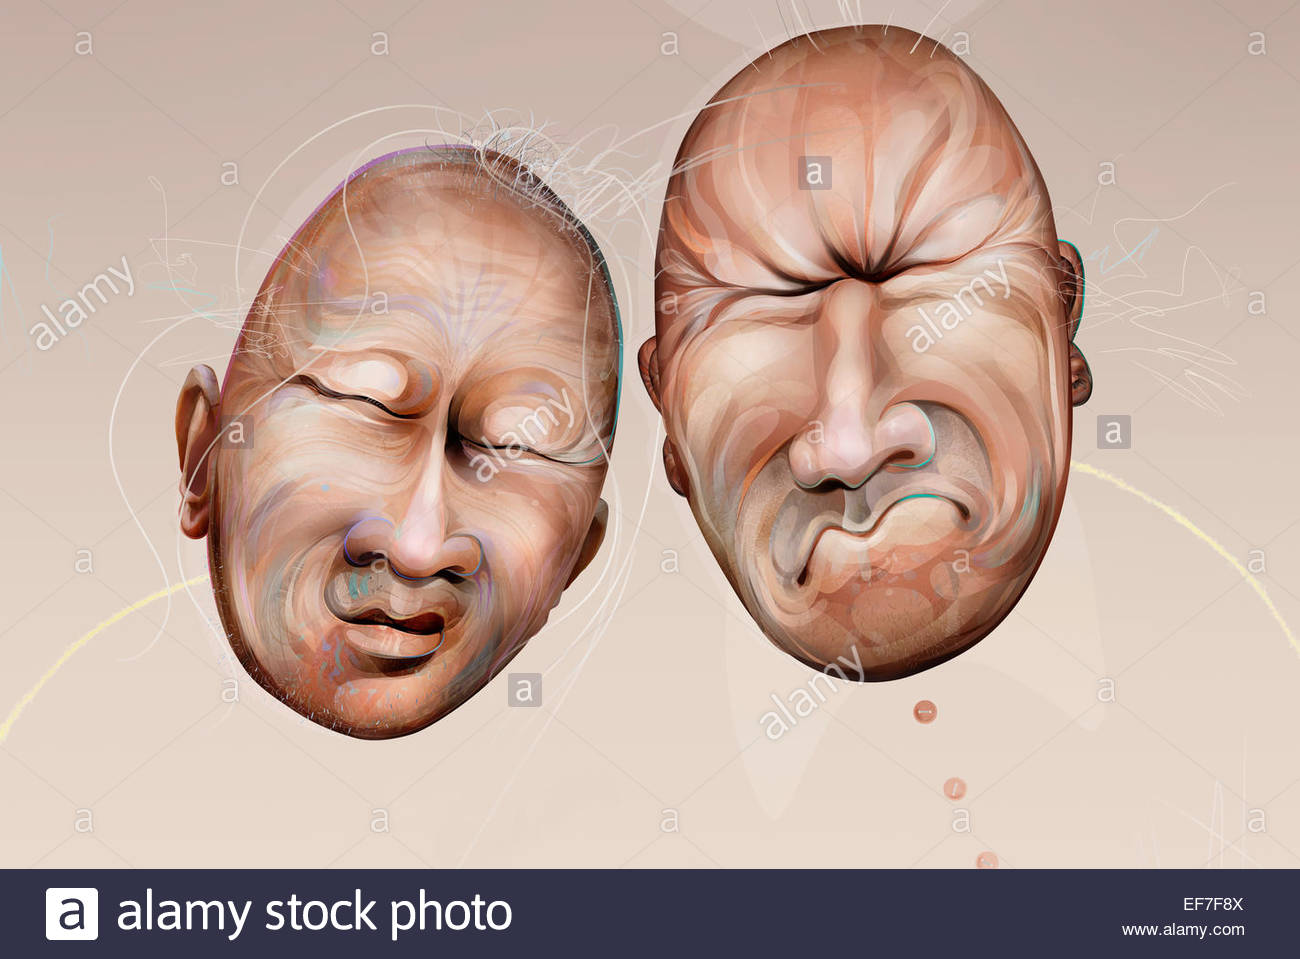 Two bald grimacing faces - Stock Image